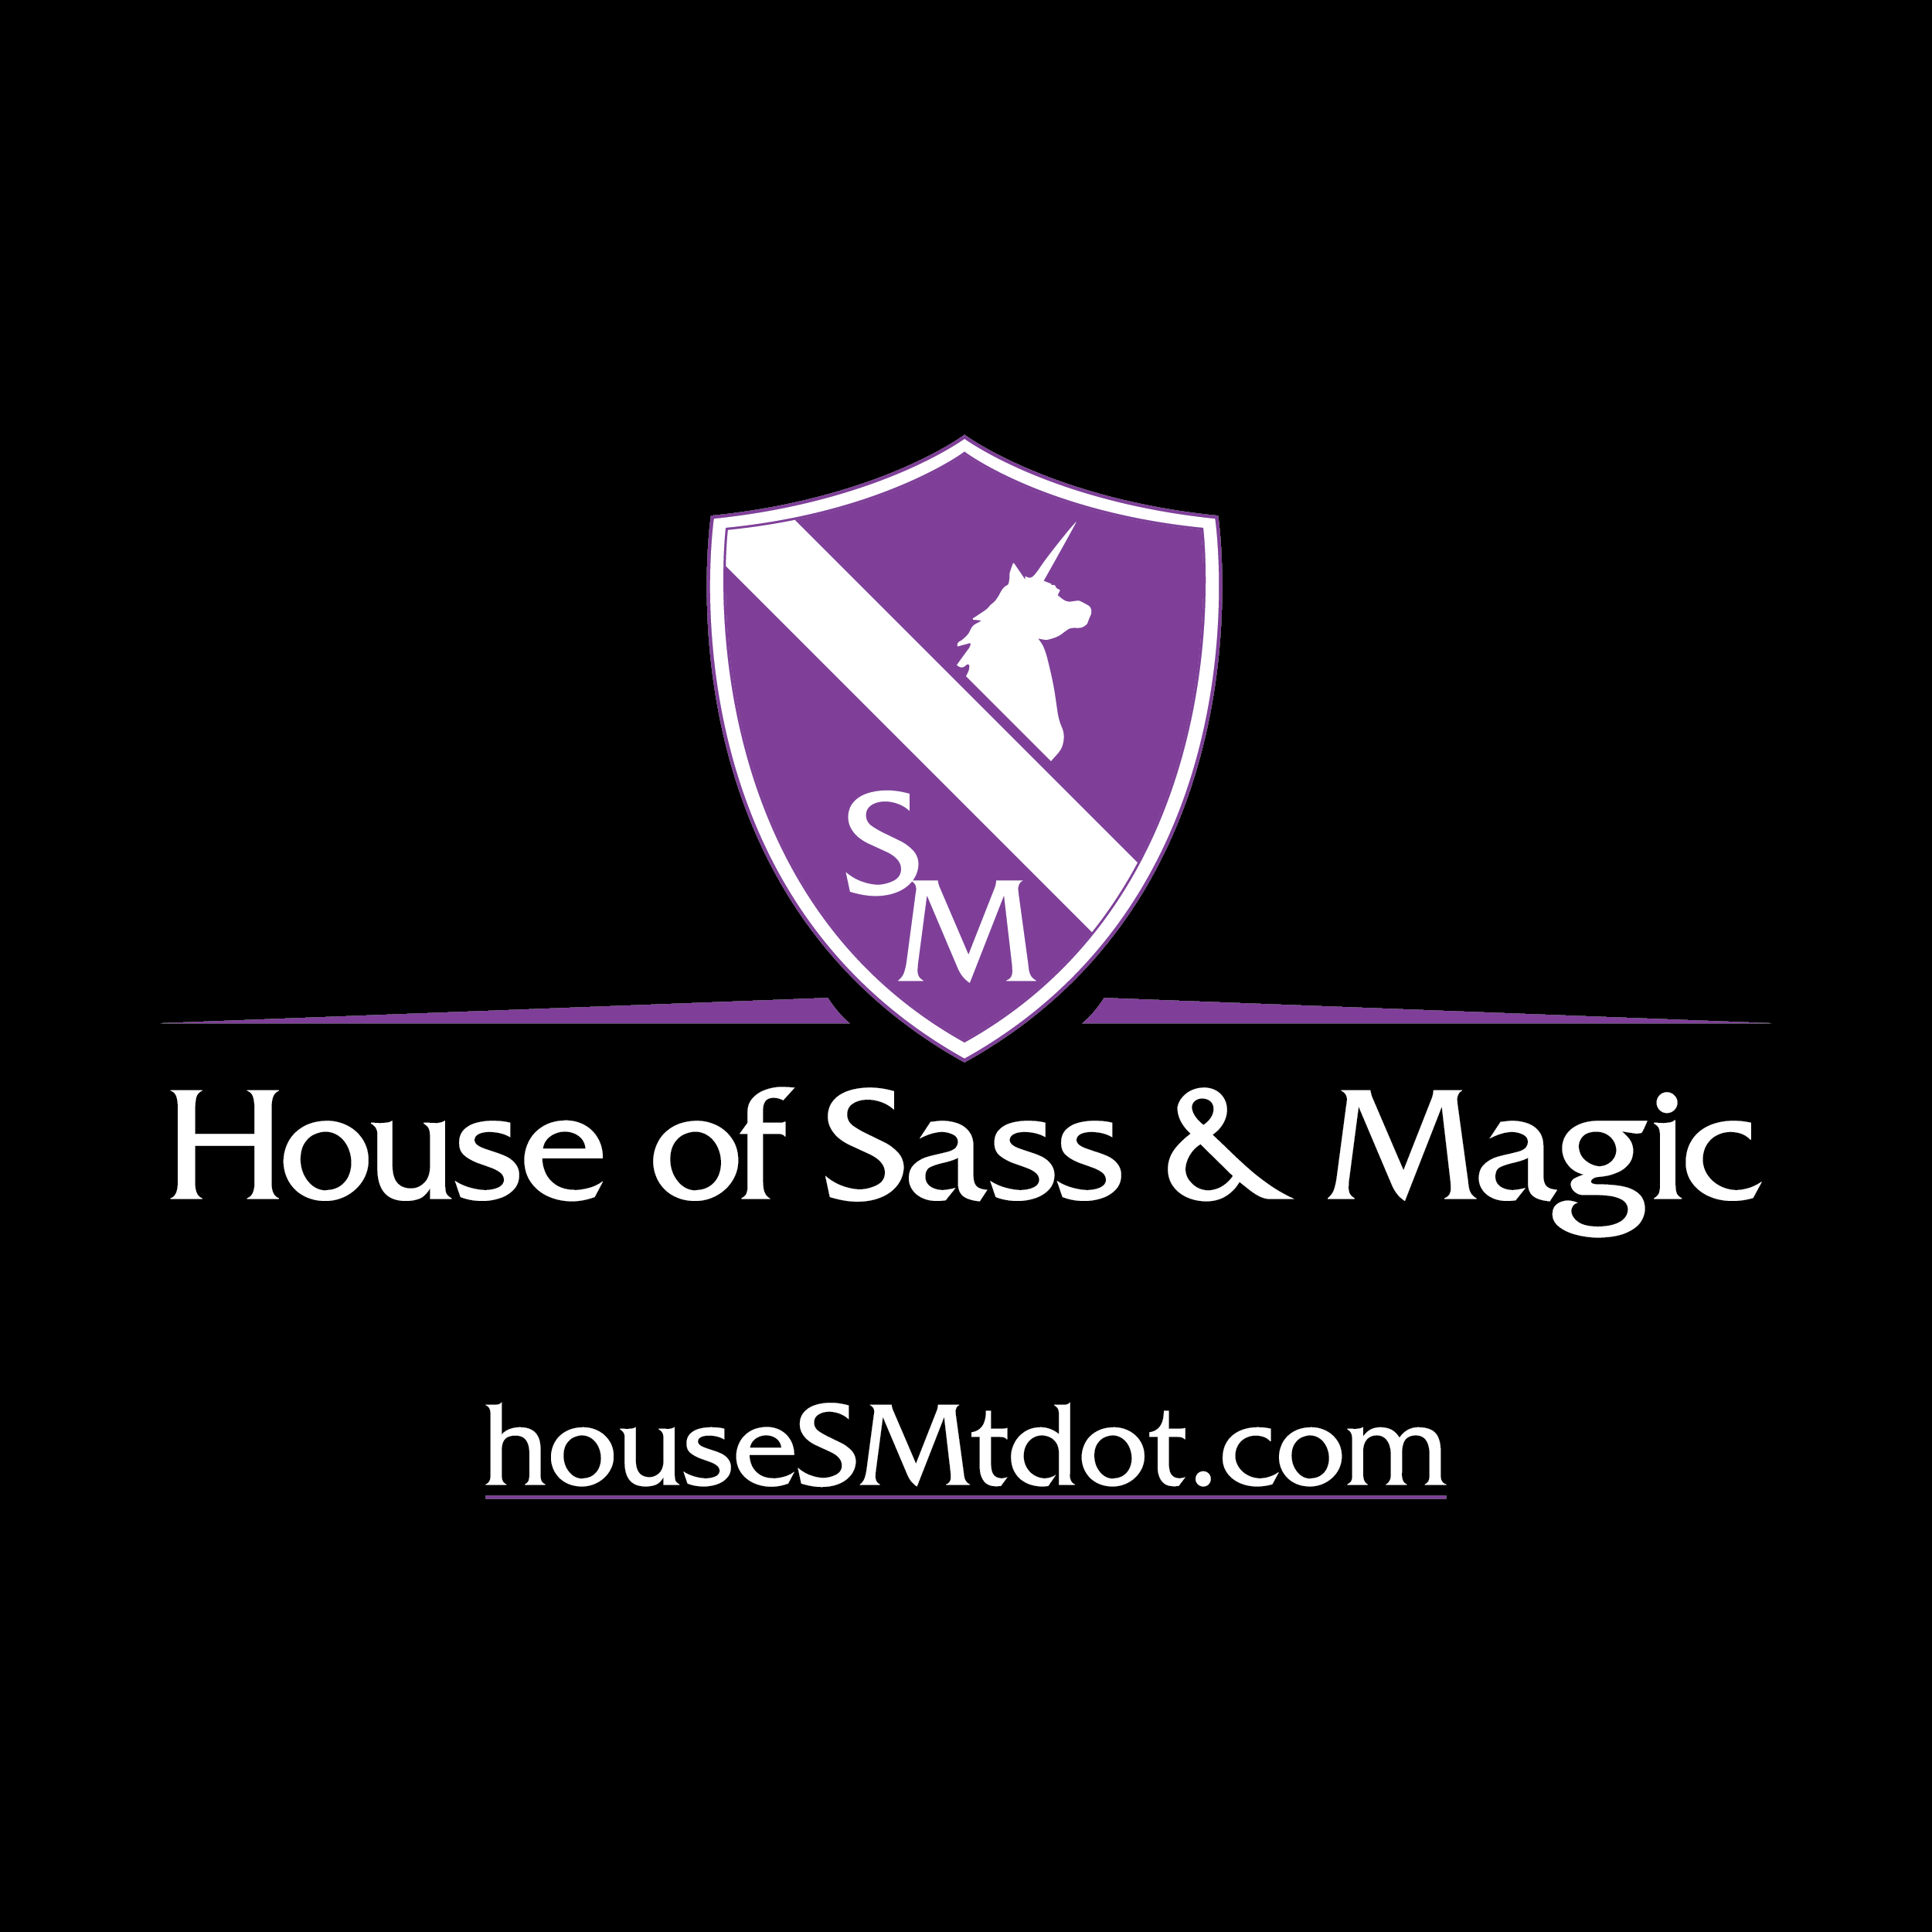 The House of Sass & Magic